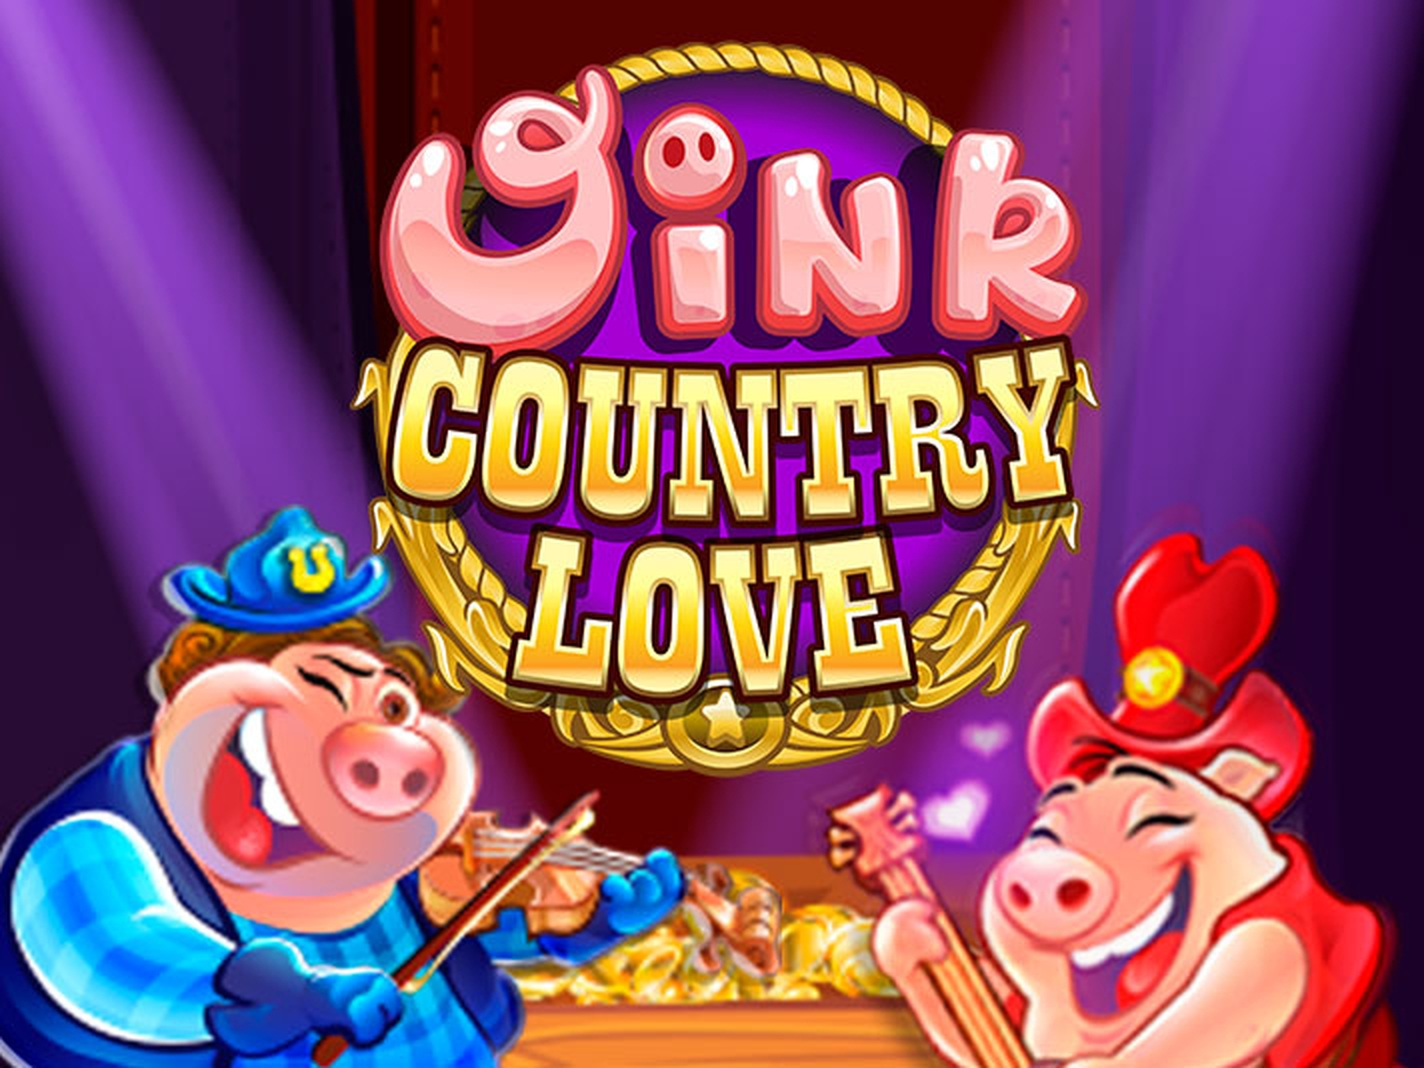 Play Oink: Country Love Free Casino Slot Game by Triple Edge Studios